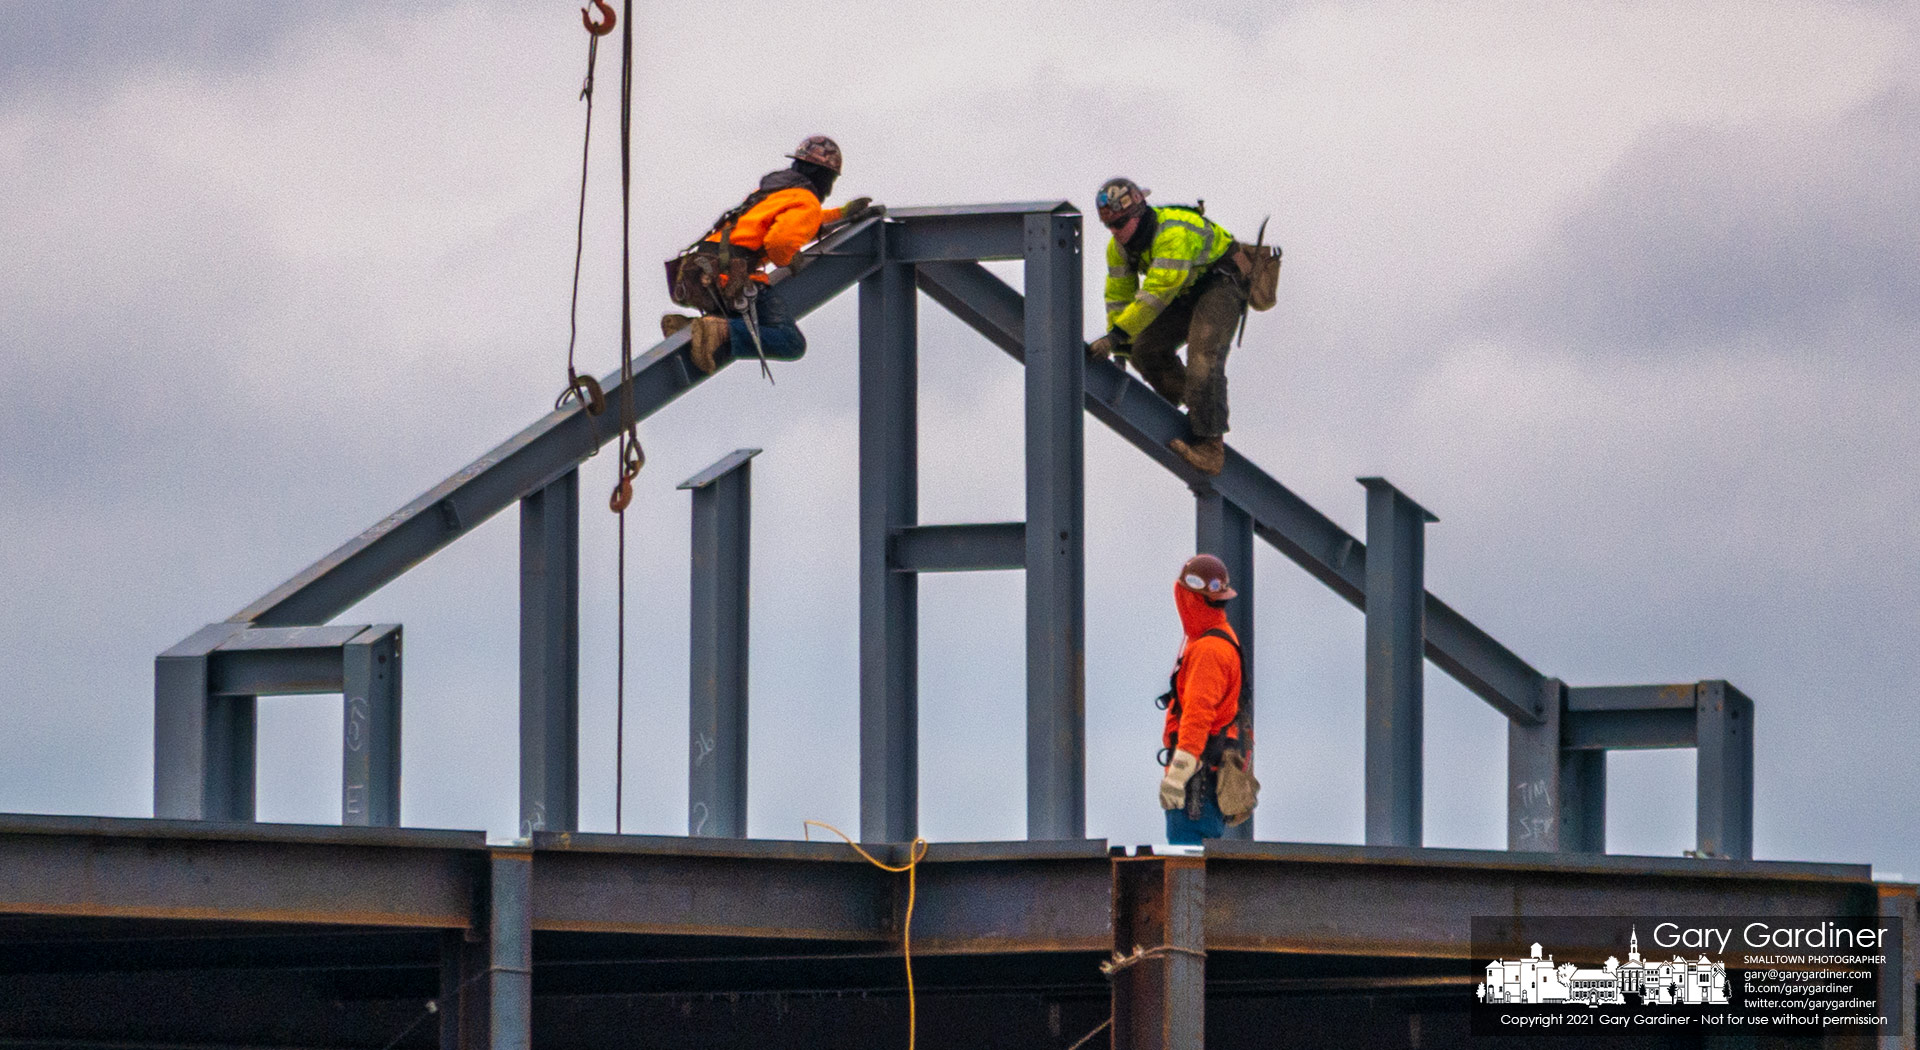 A pair of steelworkers attach struts to beams at the top of the new health care facility under construction at the corner of County Line and Africa Roads. My Final Photo for Jan. 27, 2021.